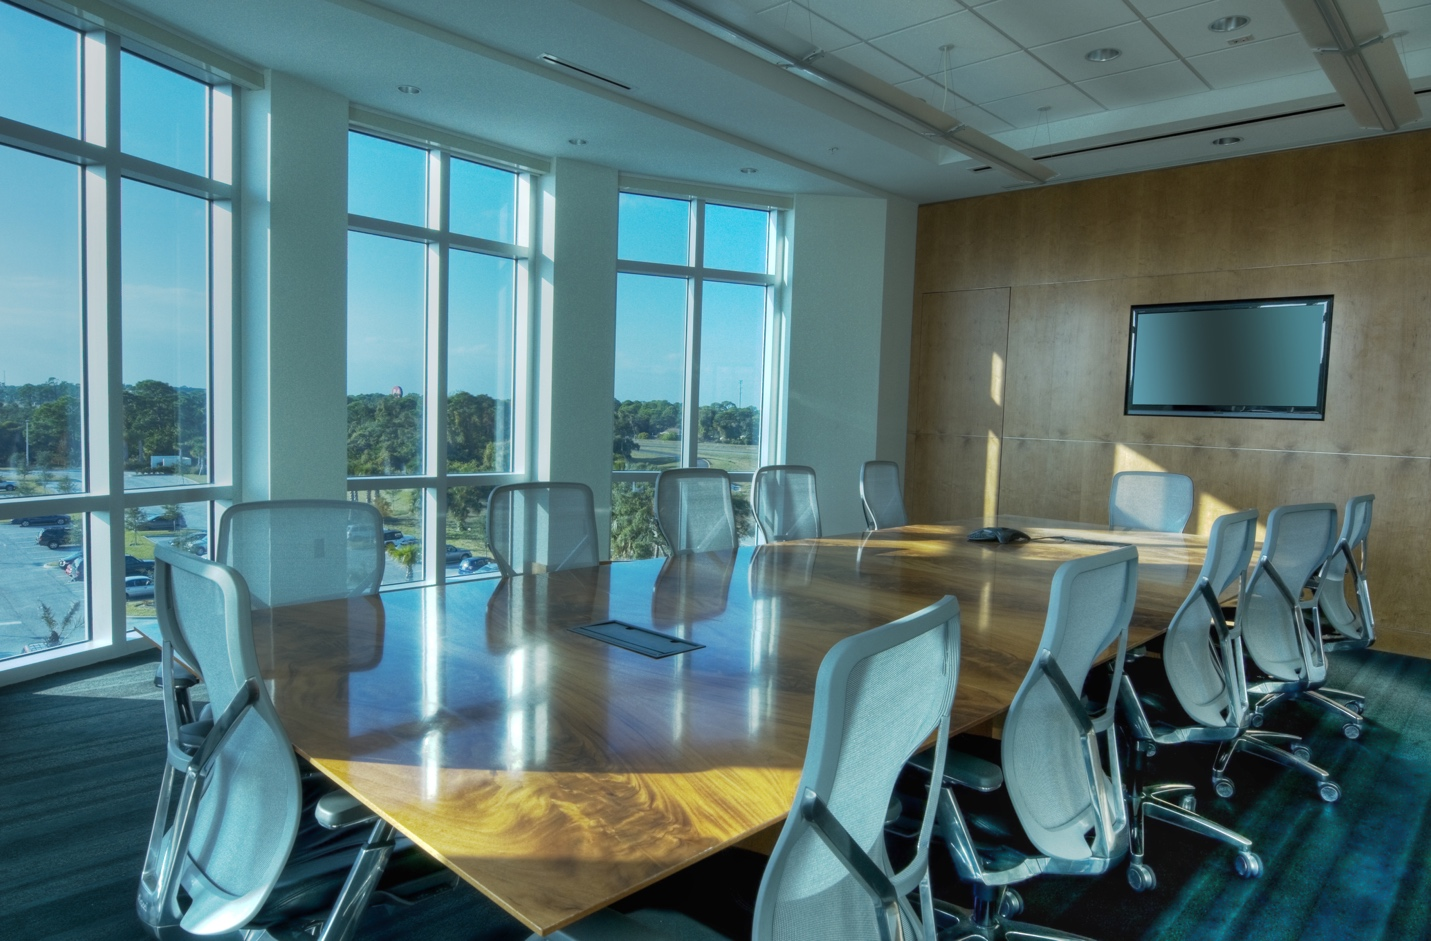 The Best Conference Room Systems for Team Productivity